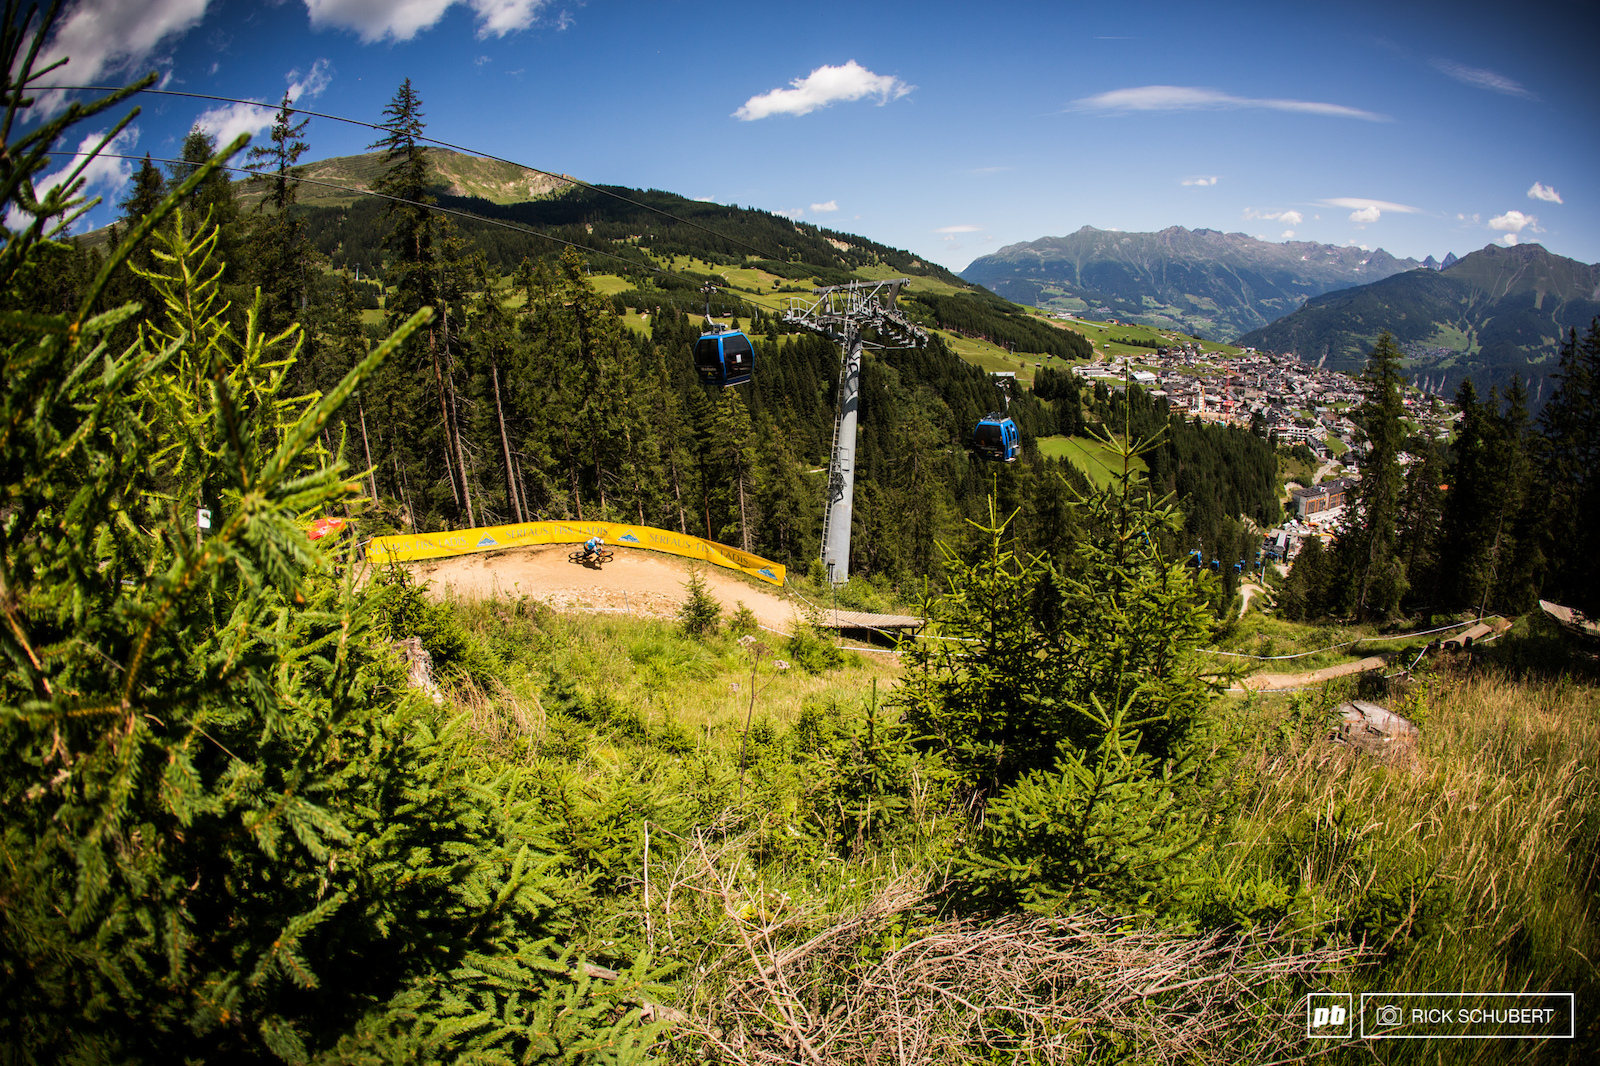 Serfaus Fiss Ladis has one of the best bikeparks in Austria and some sweet views as well